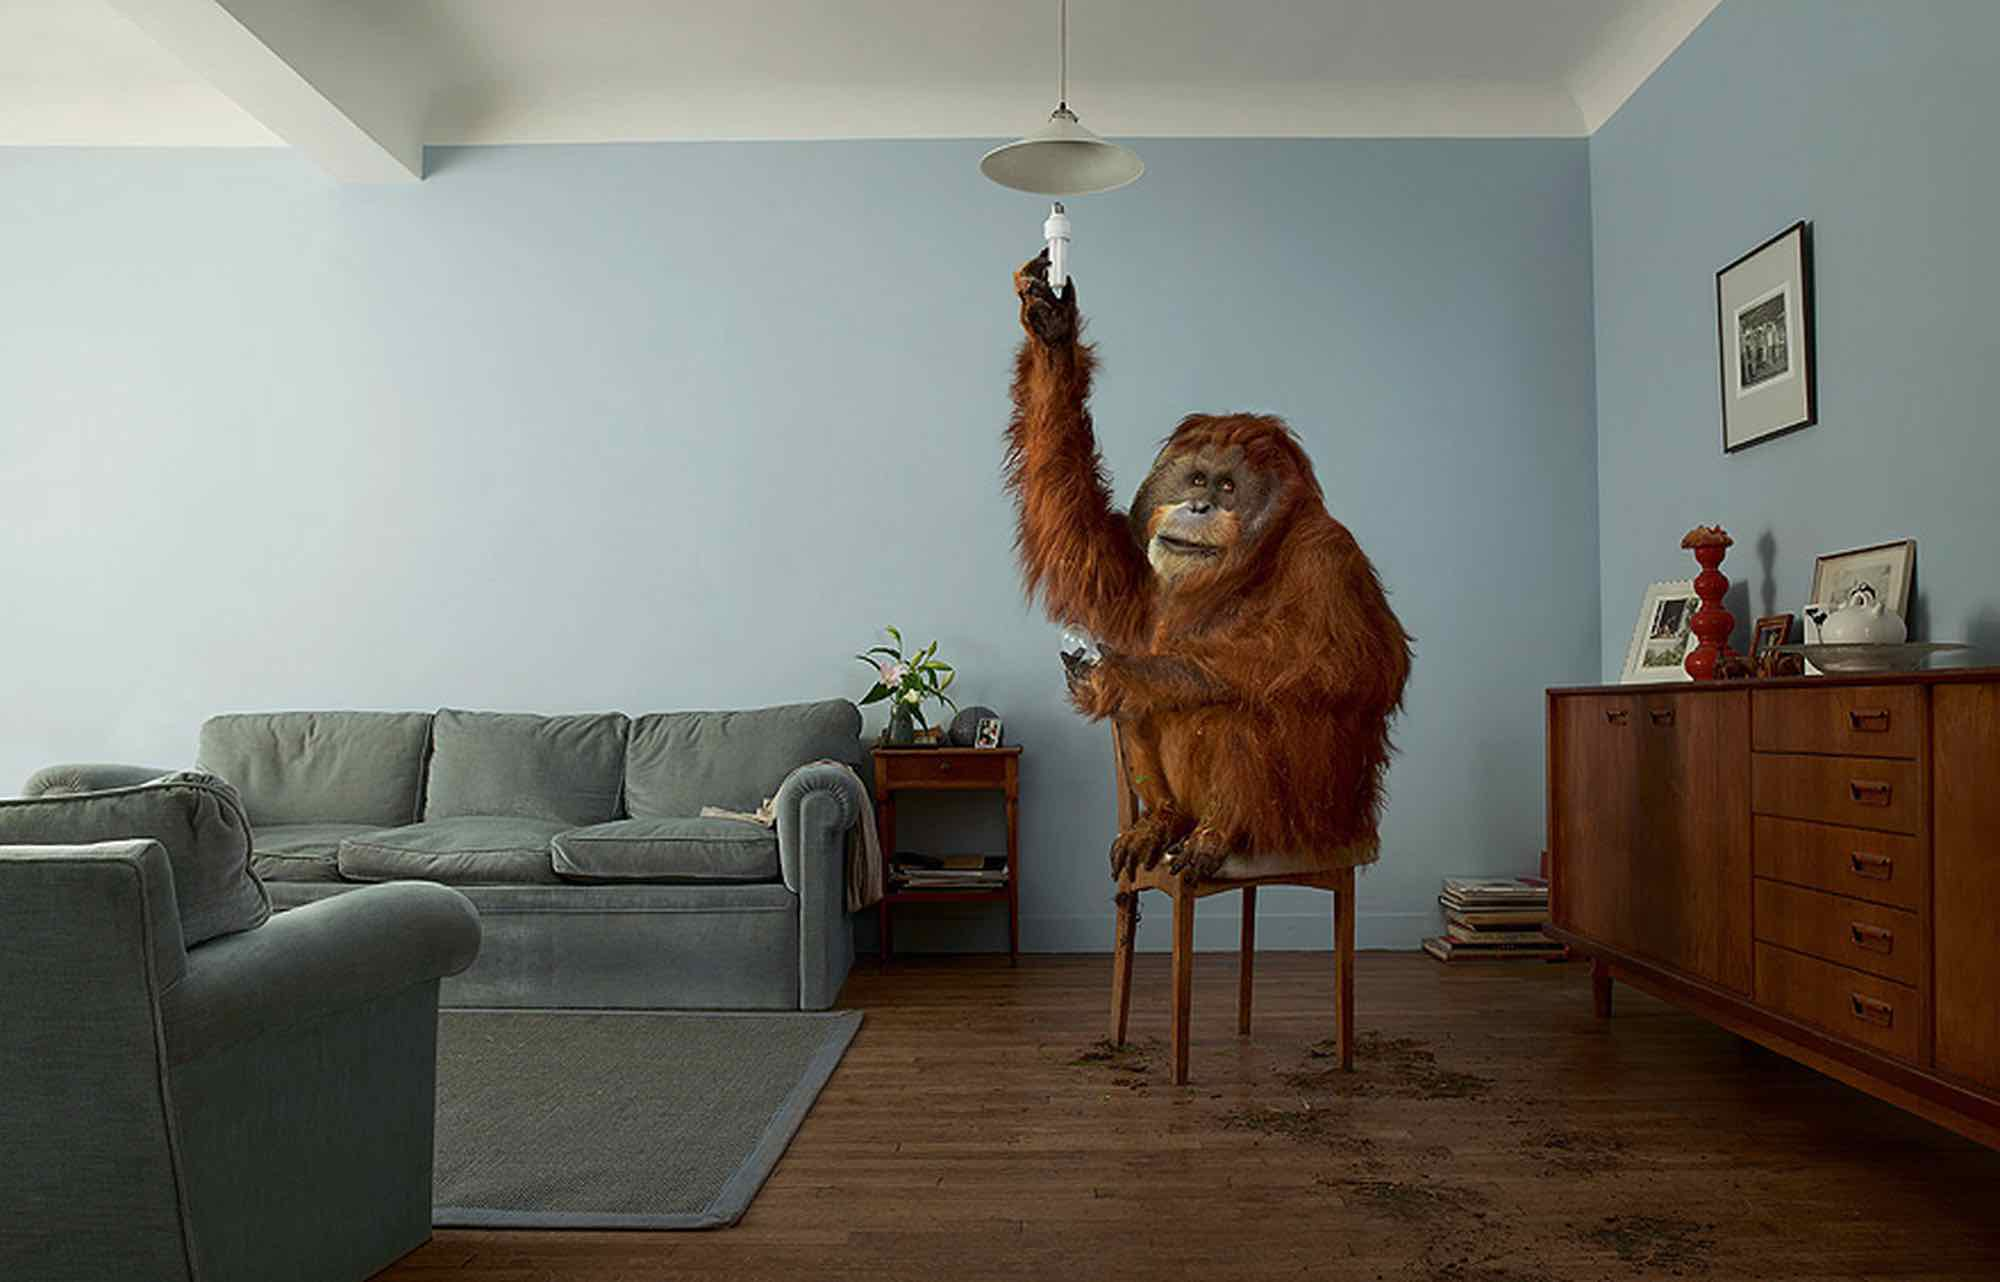 orang outang change une lampe du lampadaire du salon. An orang outang changes the bulb of a lamp in the living room.